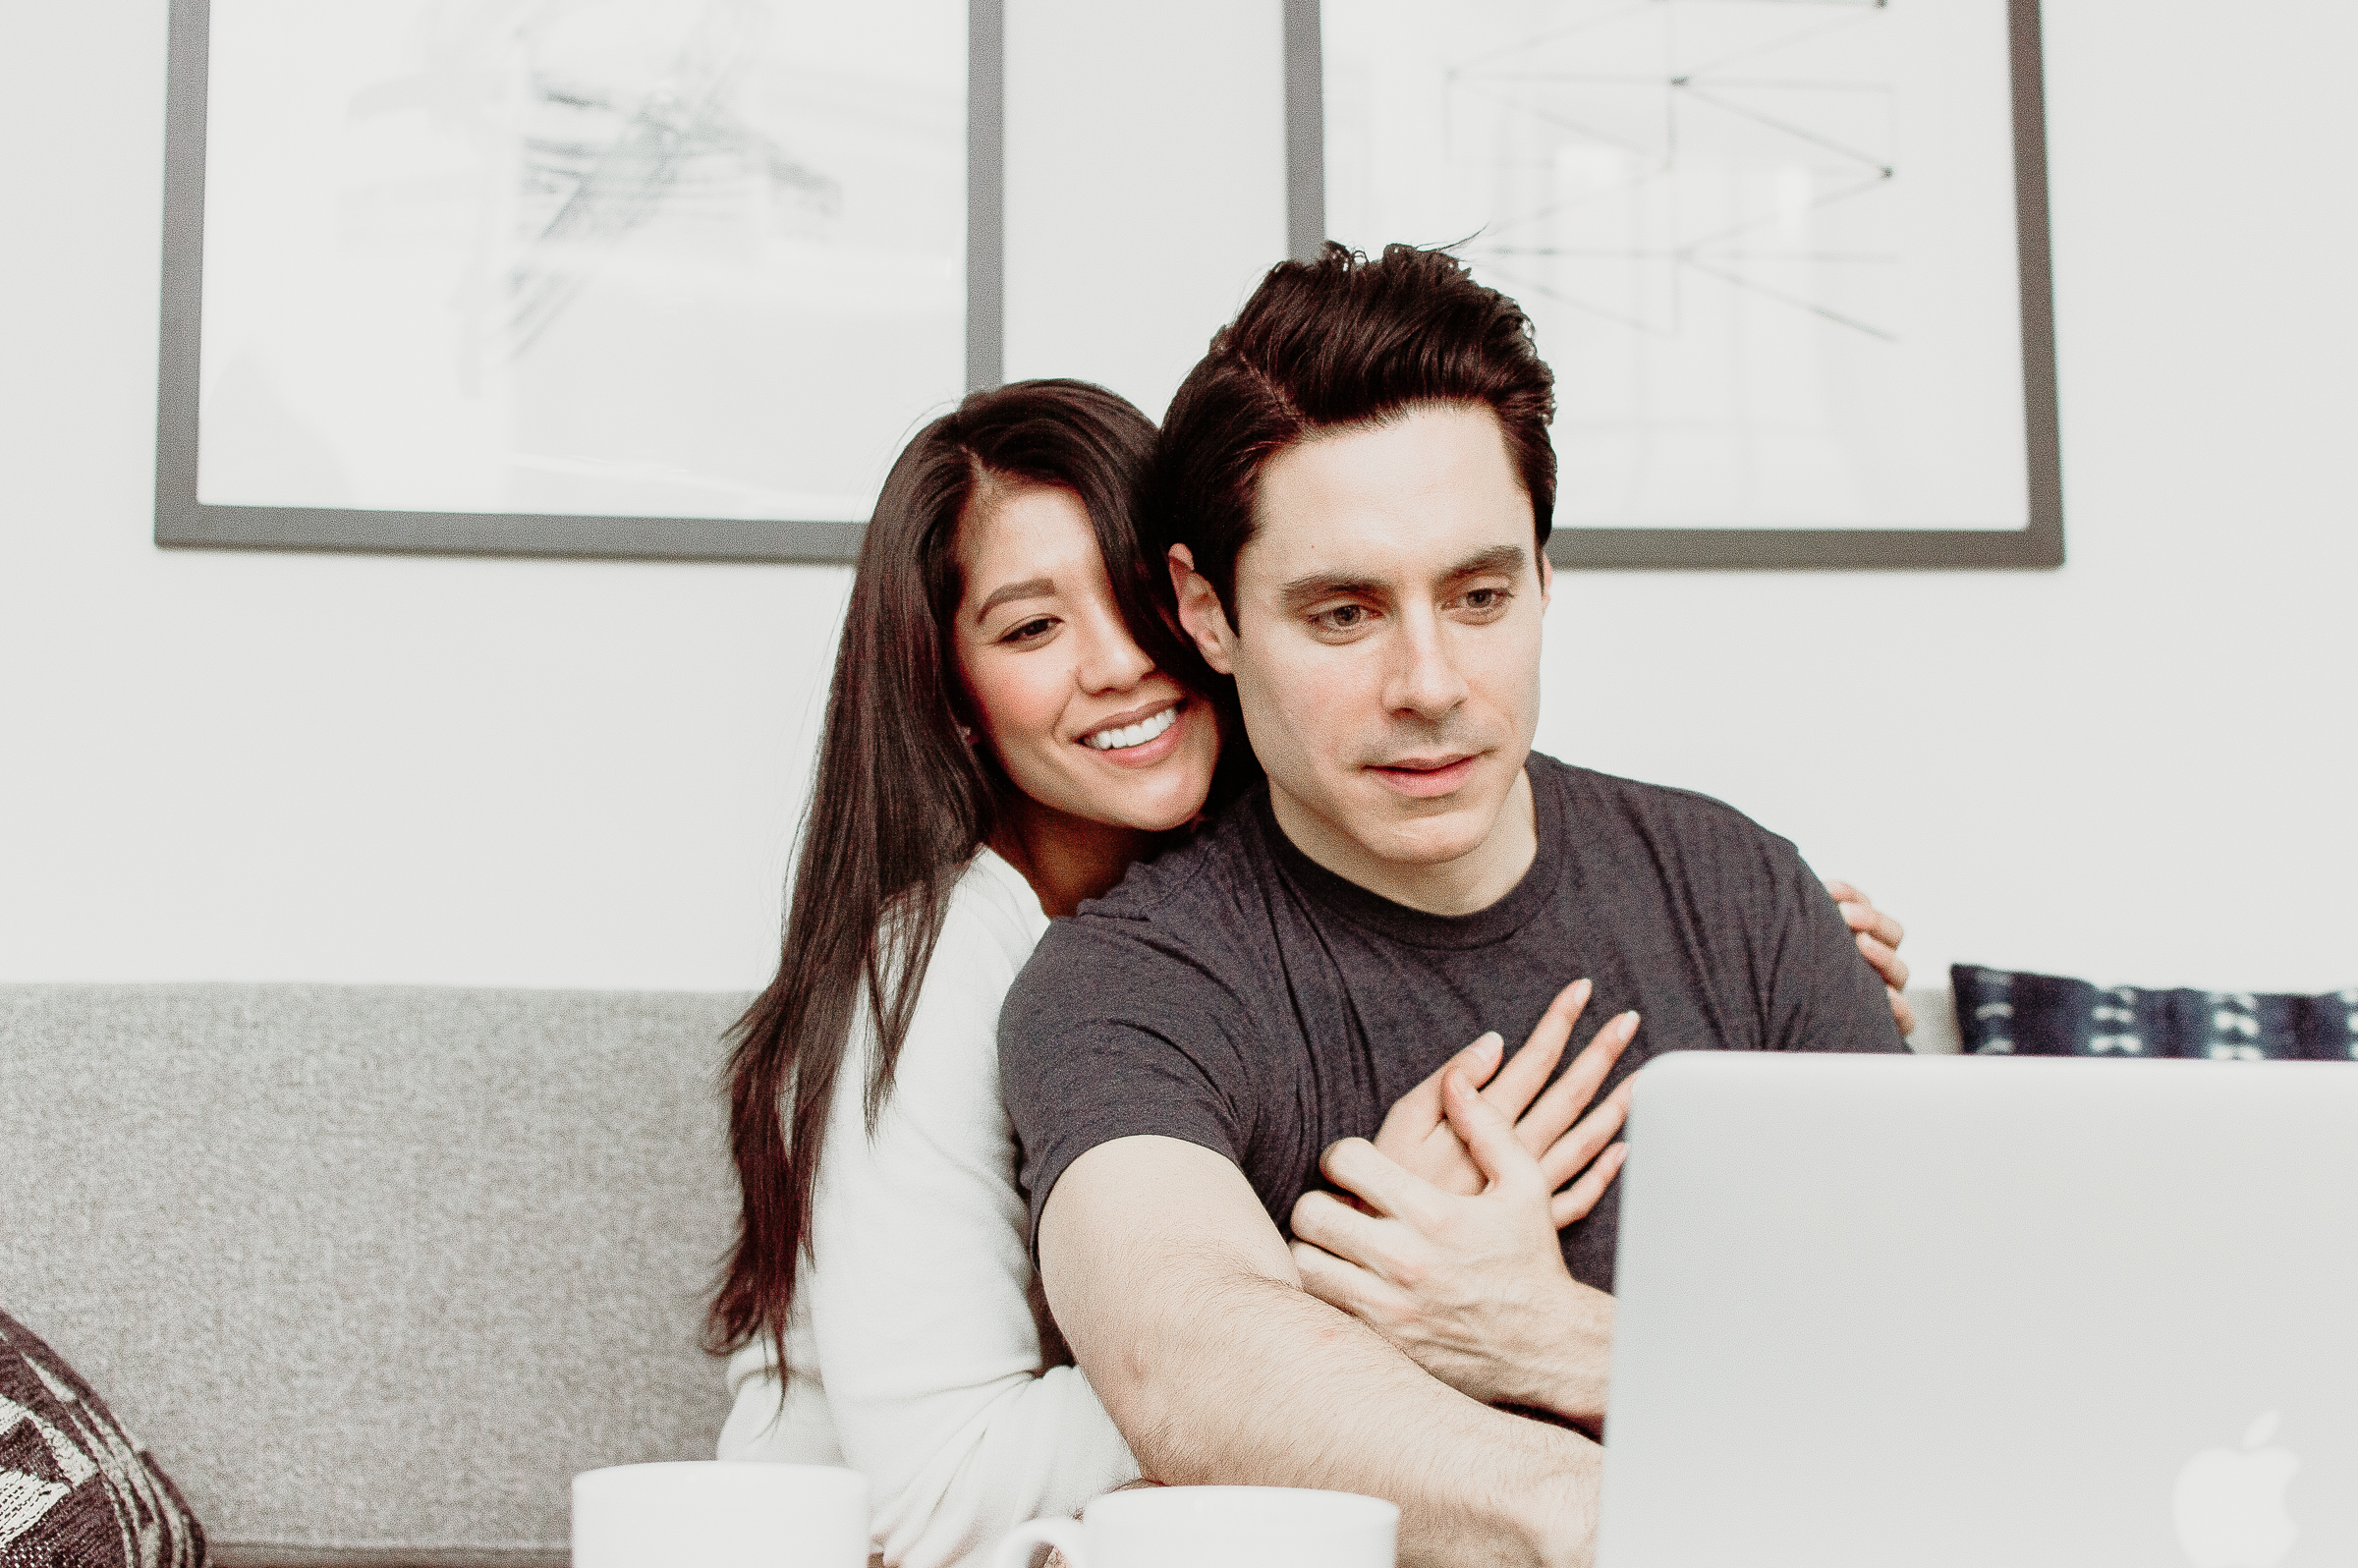 Couple looking at a laptop together on the couch